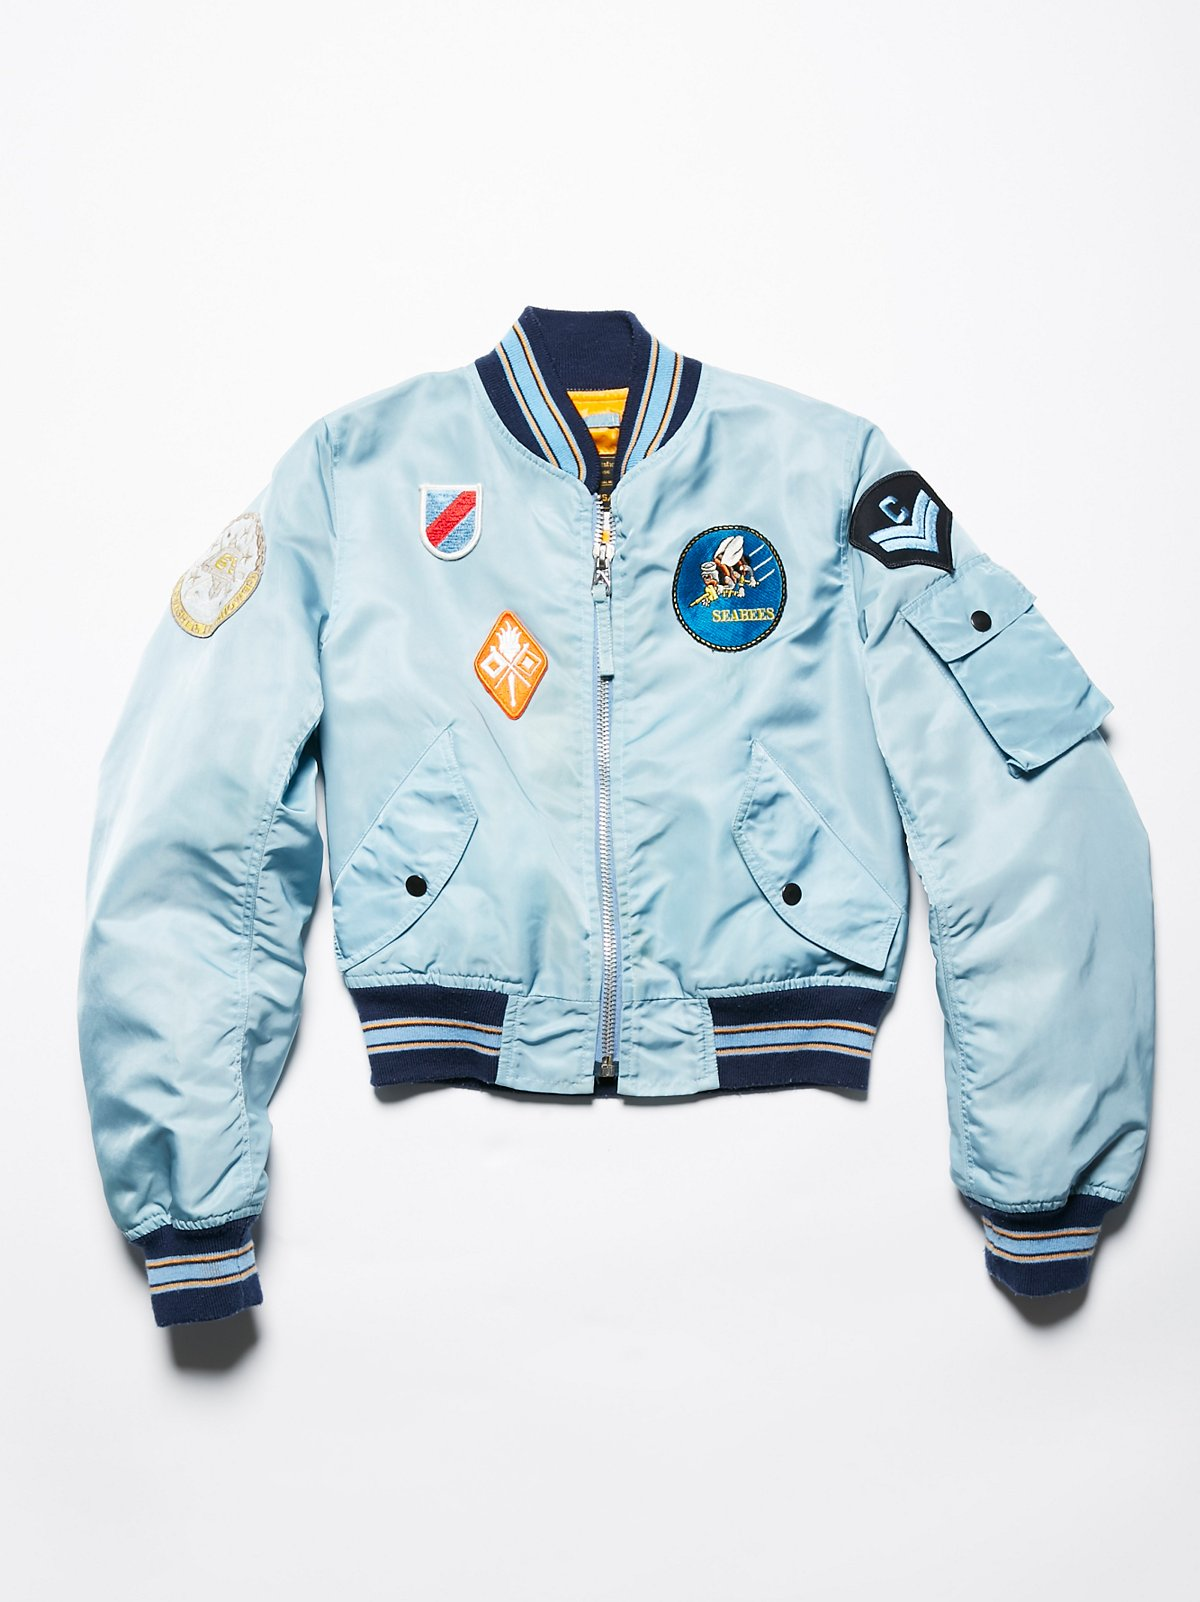 Vintage Flight Bomber Jacket